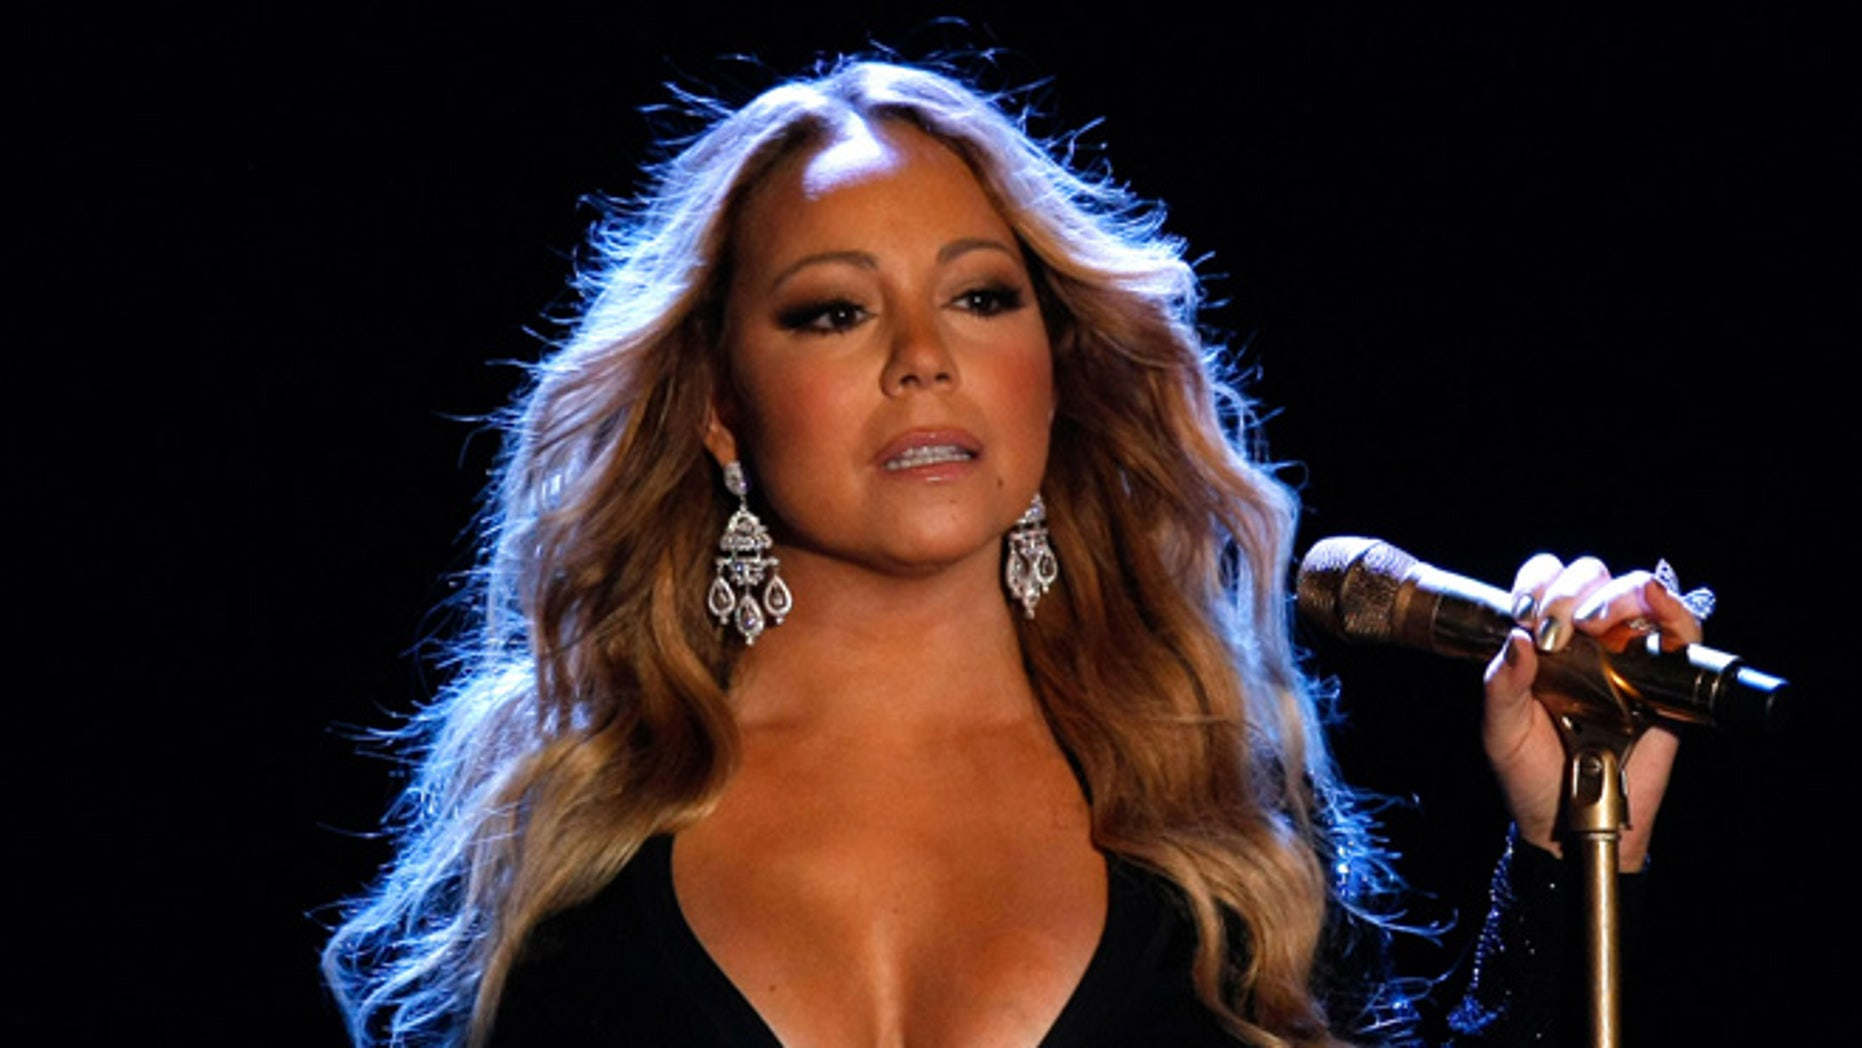 Mariah Carey reportedly settled a lawsuit with her ex-manager who accused her of sexual harassment.